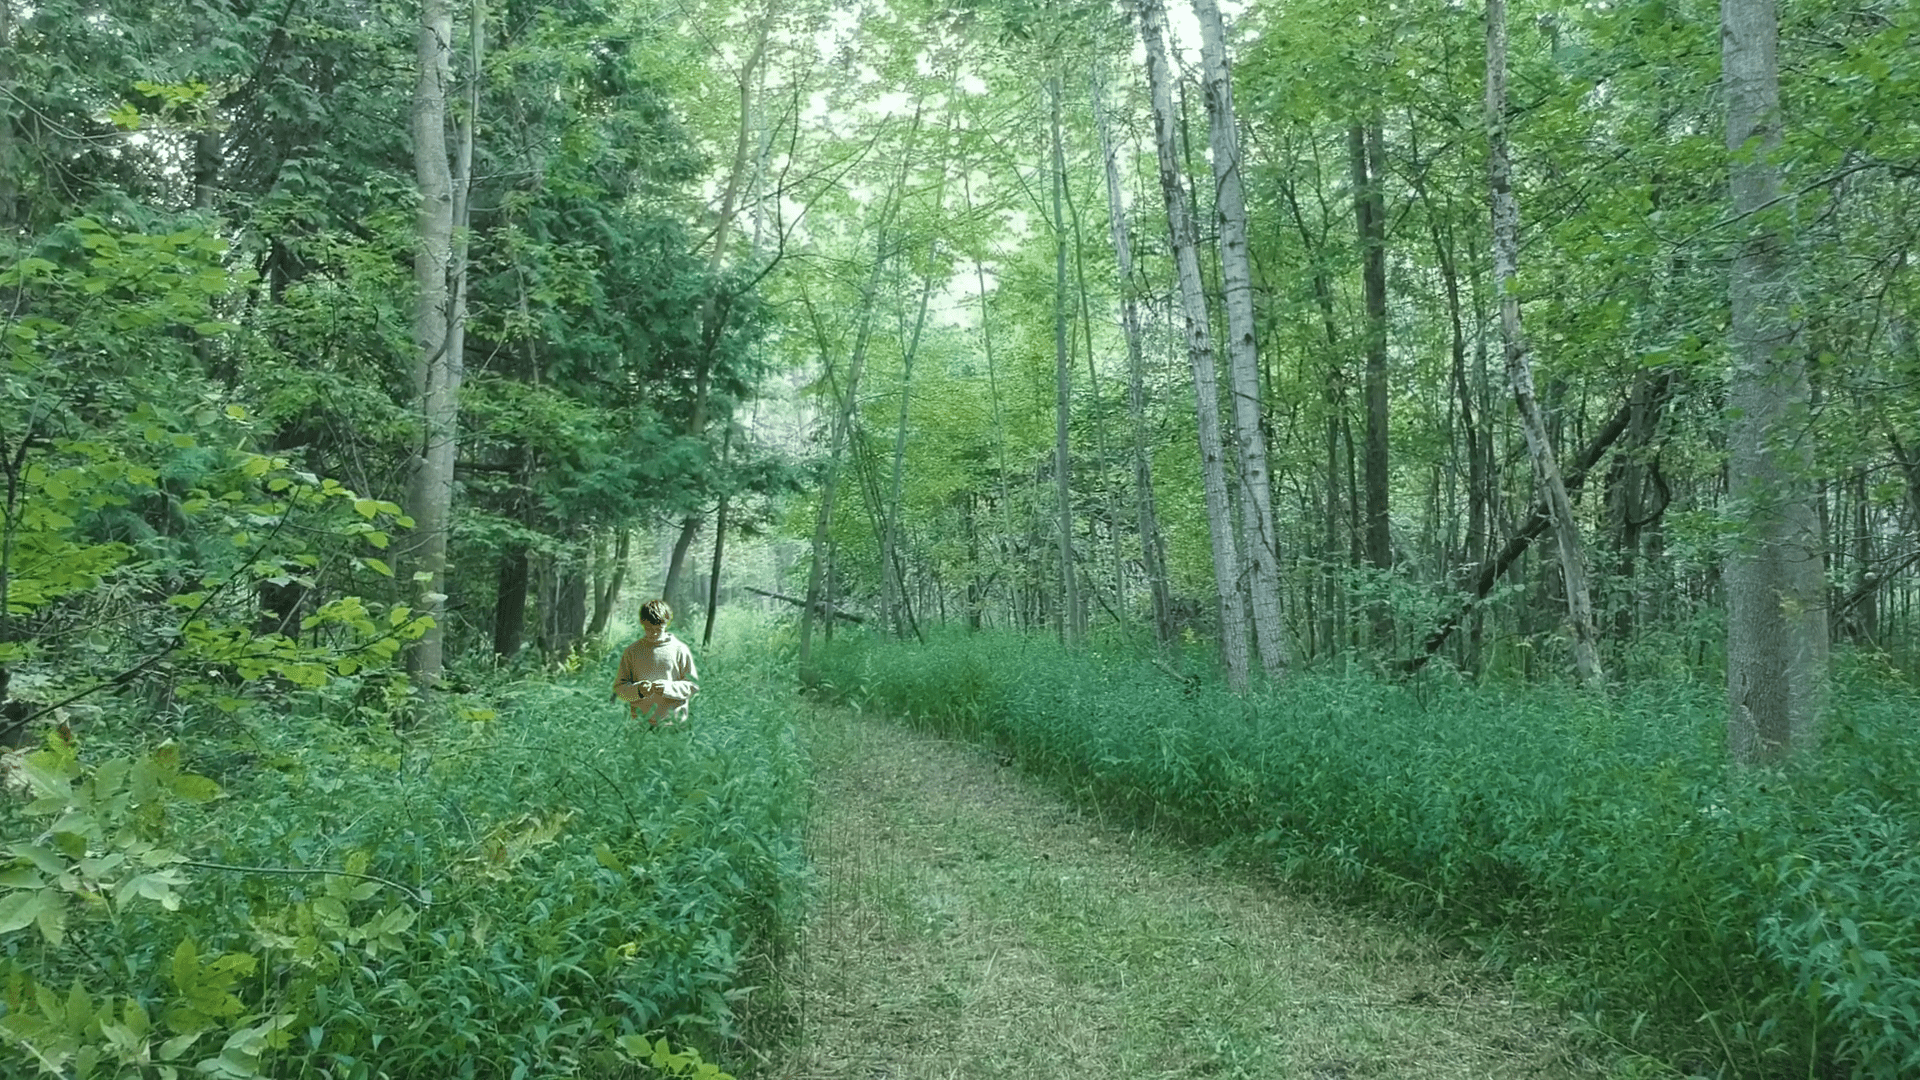 single child amongst the meadowed trail at The Hollows Camp